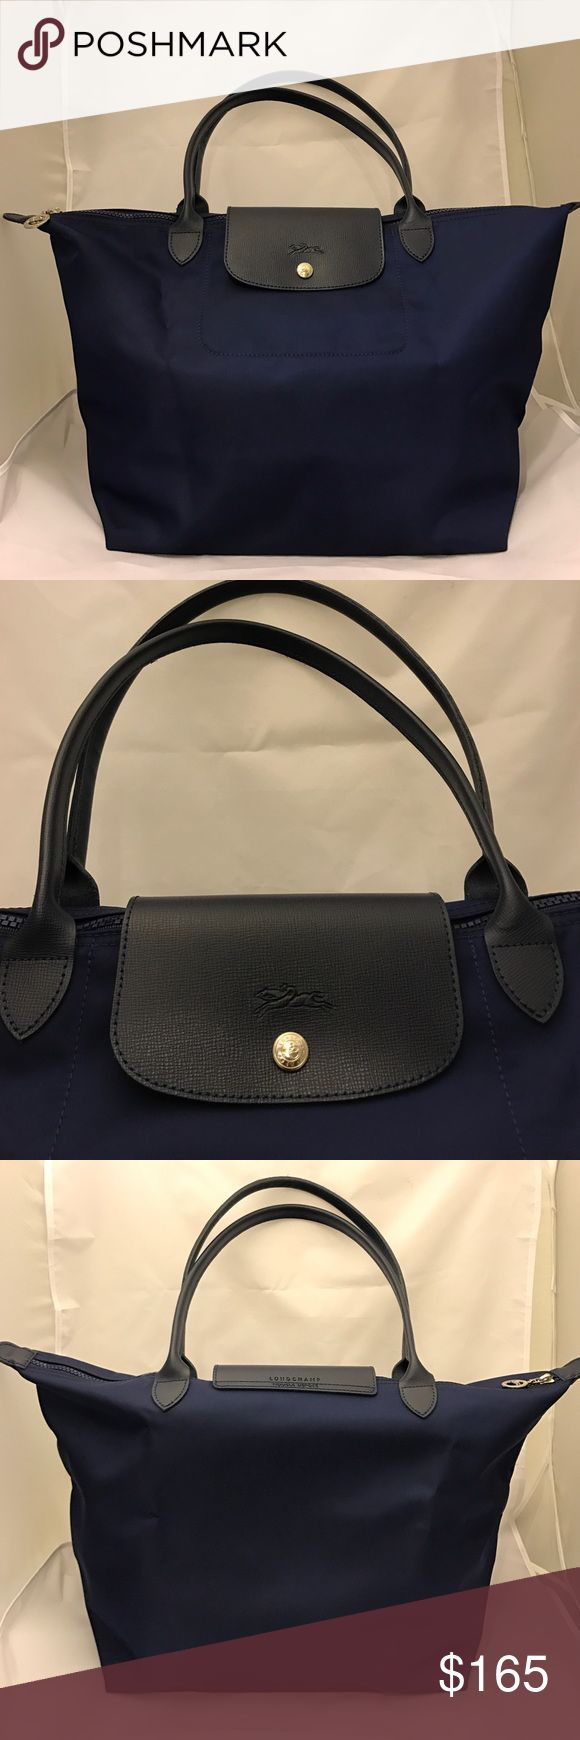 Longchamp Large Le Pliage Neo Nylon Tote Navy Blue Longchamp Large Le Pliage Neo Nylon Tote Navy Blue  Like new condition. 100% authentic.   12.25W x 11.75H x 7.5D (Interior: Large)  Leather in very good condition.   Nylon in very good condition. 1 of 4 corners is lightly scuffed. All other corners are in perfect condition.   Interior is in good condition.   Feel free to ask any questions. Longchamp Bags Totes